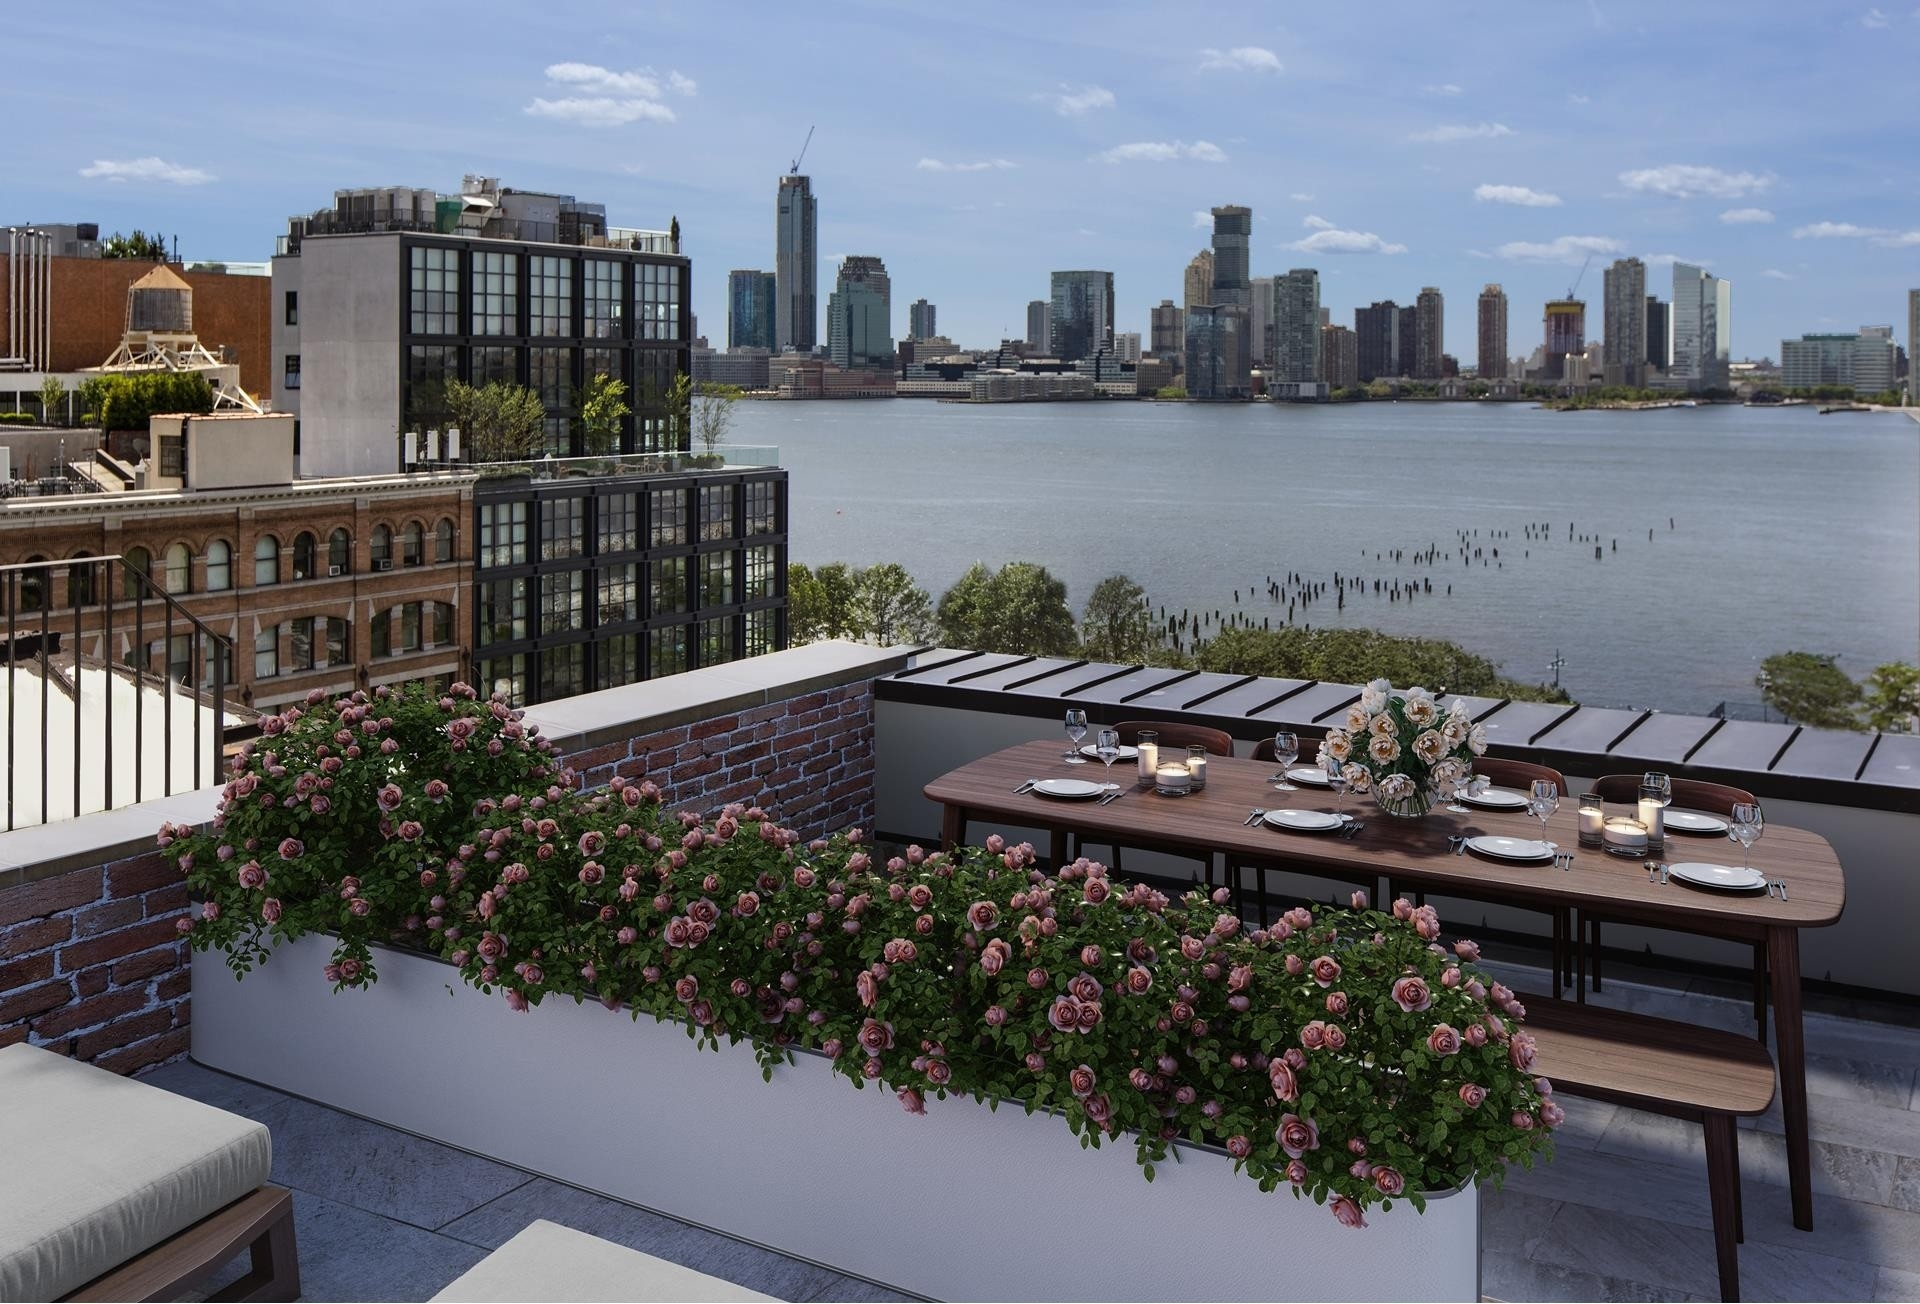 1. Condominiums for Sale at Spice Warehouse, 481 WASHINGTON ST , PHBC Hudson Square, New York, NY 10013